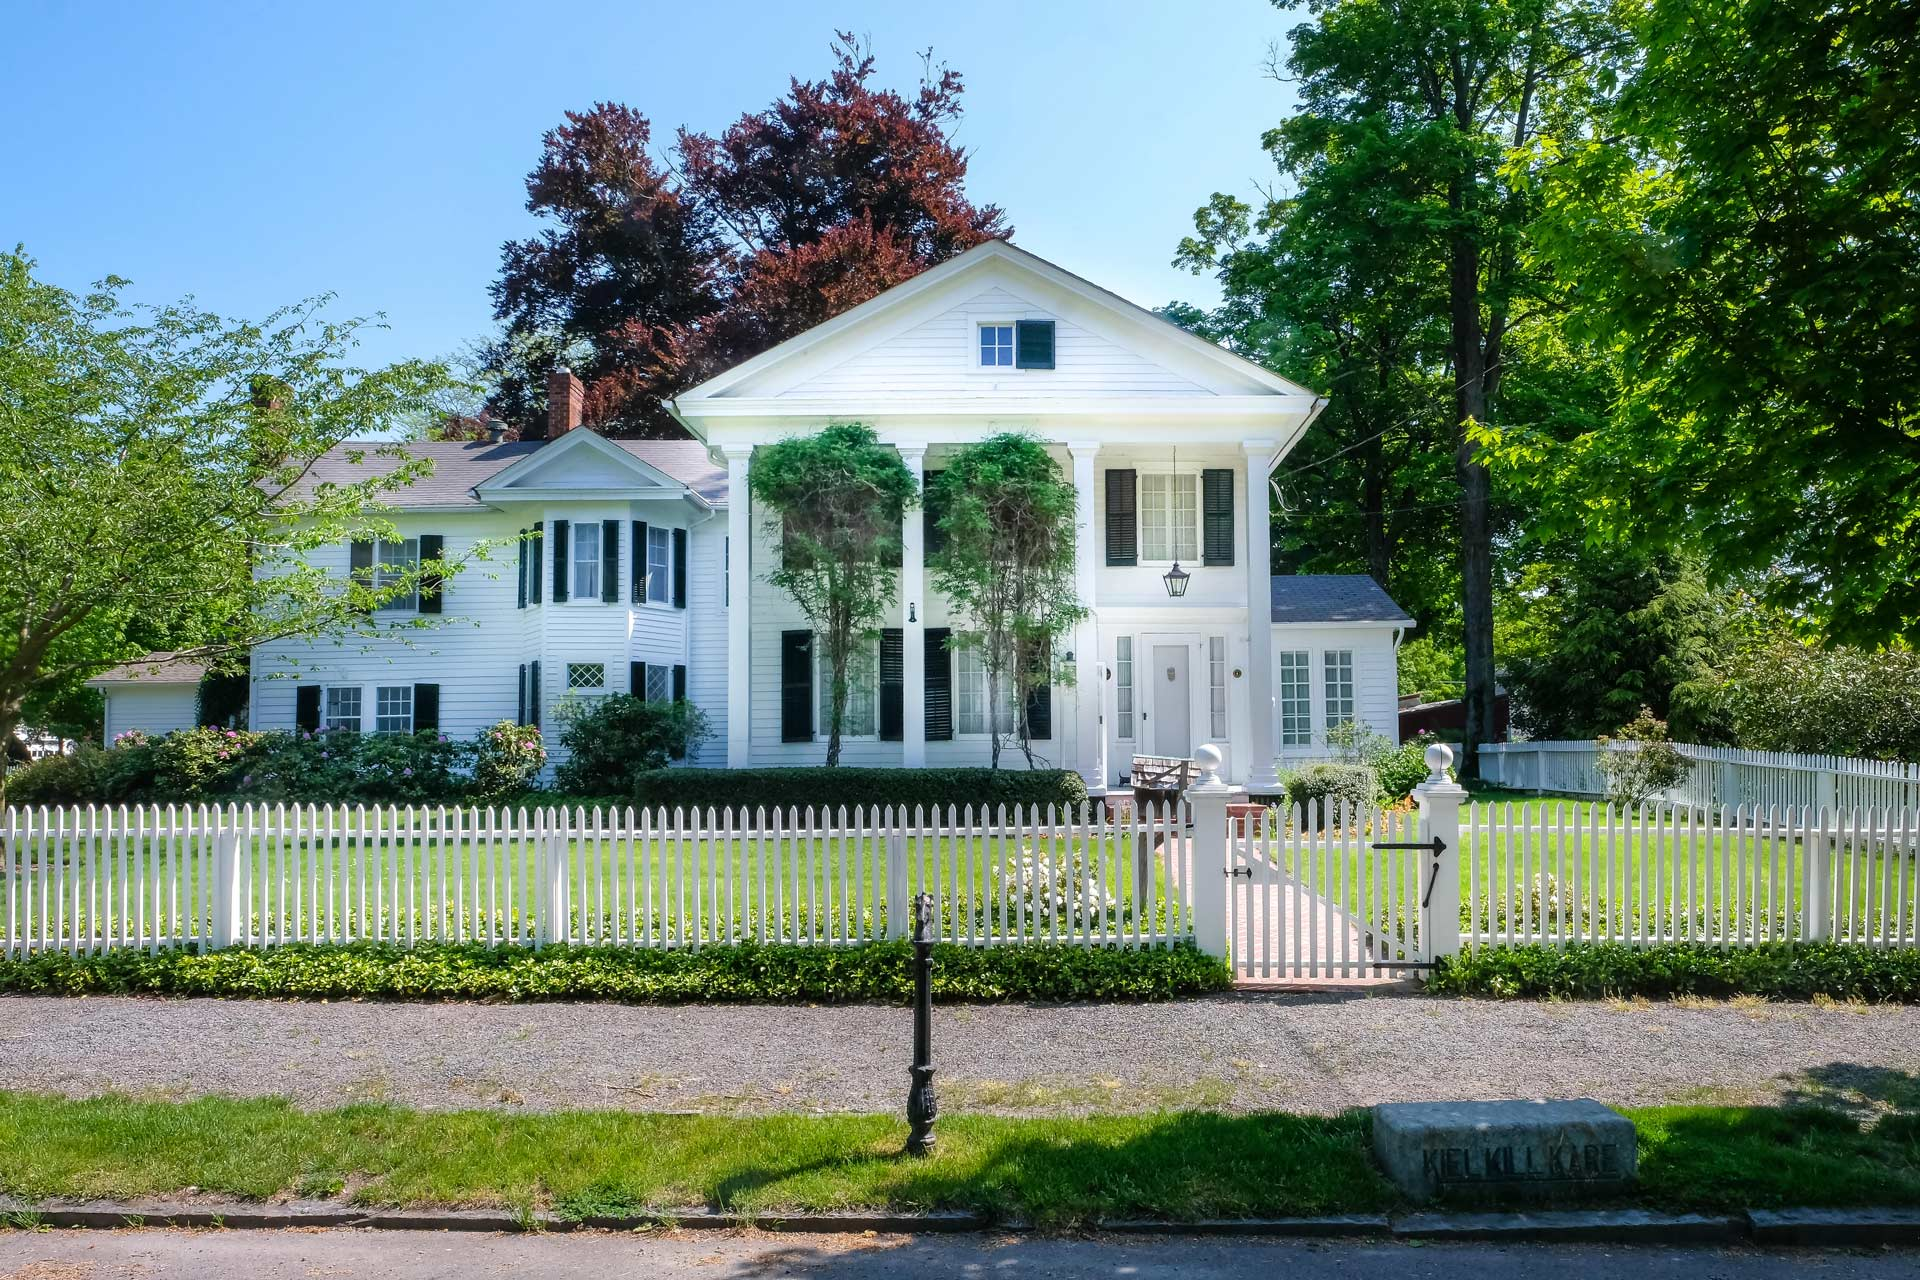 large old white house with black shutters and white picket fence